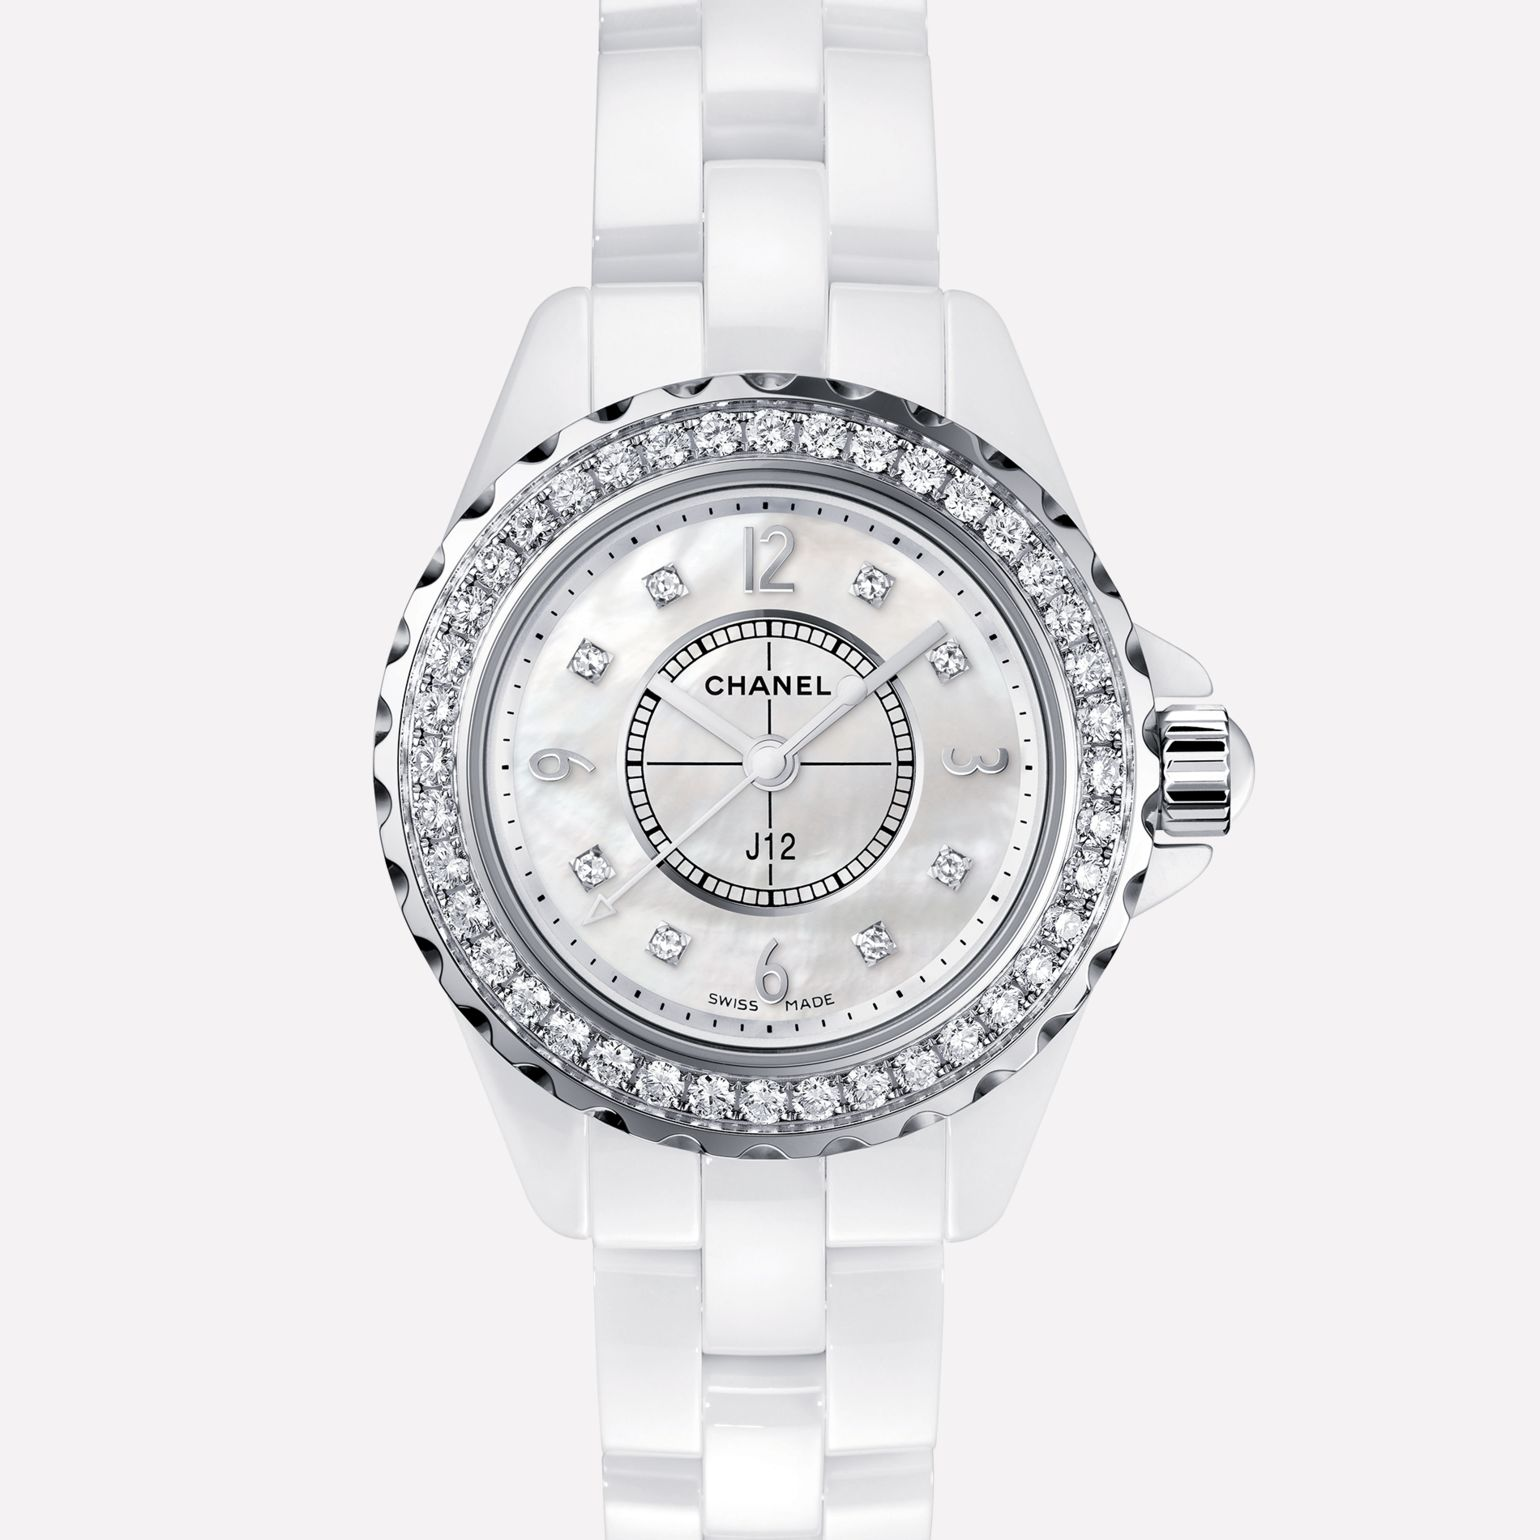 J12 White highly resistant ceramic and steel, brilliant cut diamond bezel and indicators, white mother-of-pearl dial